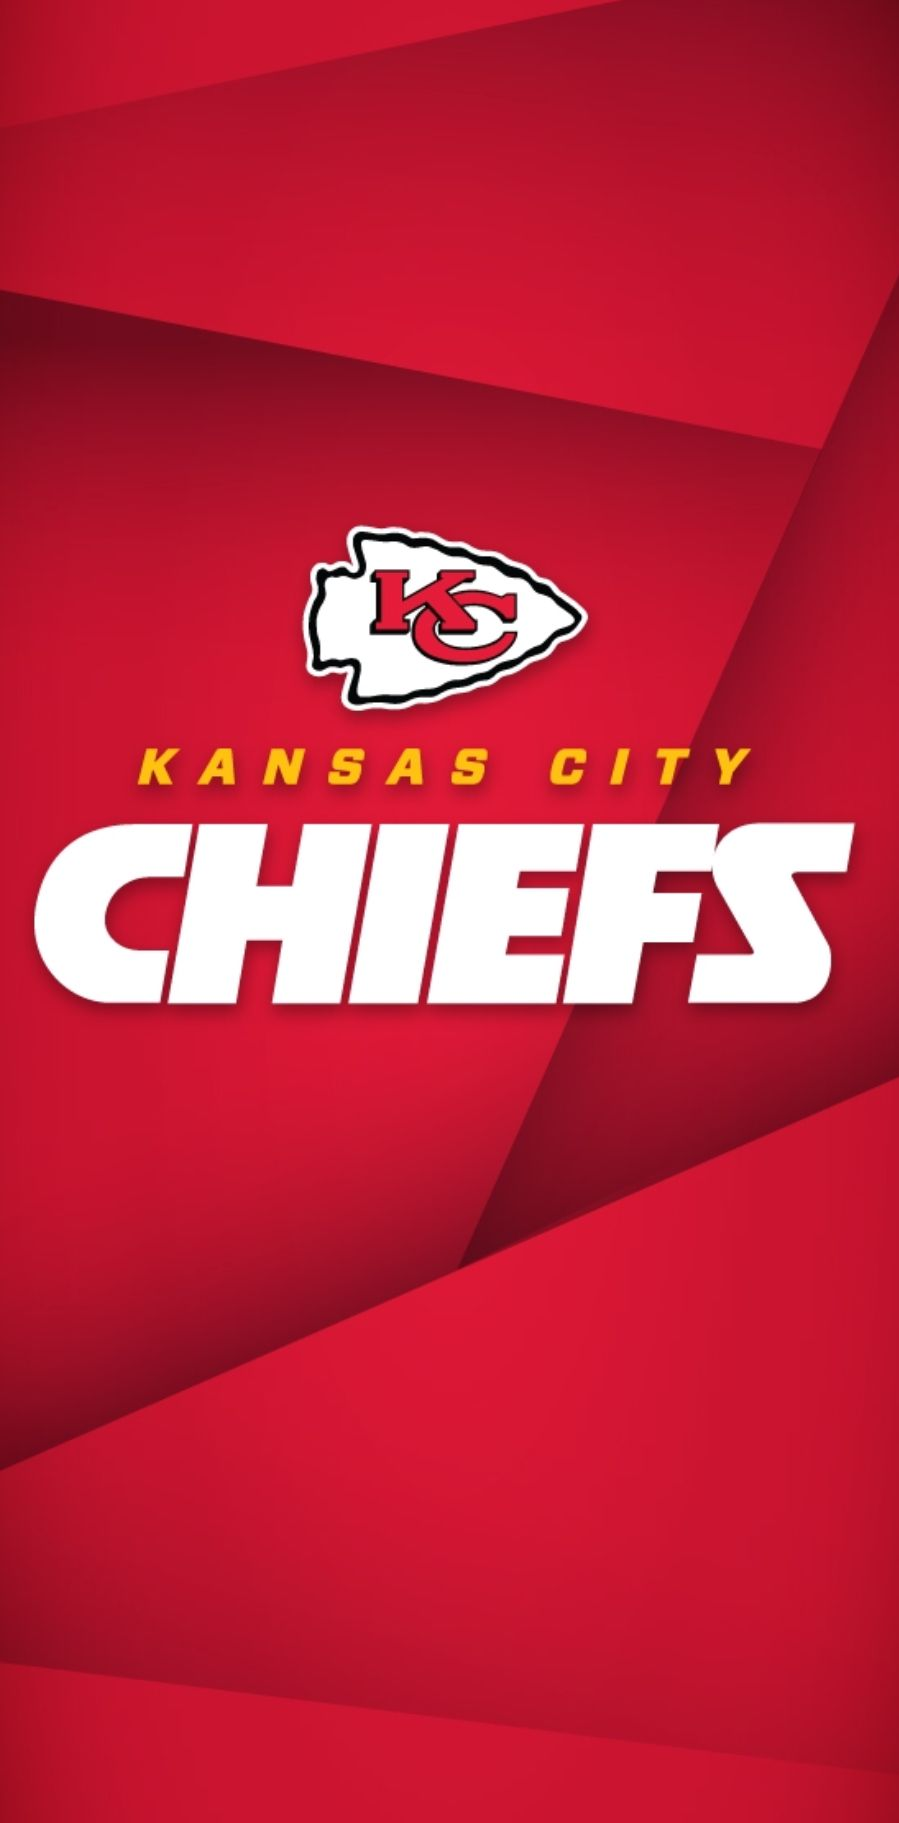 Pin By James Edwards On Kansas City Chiefs Superbowl Champions Kansas City Chiefs Chiefs Wallpaper Kc Chiefs